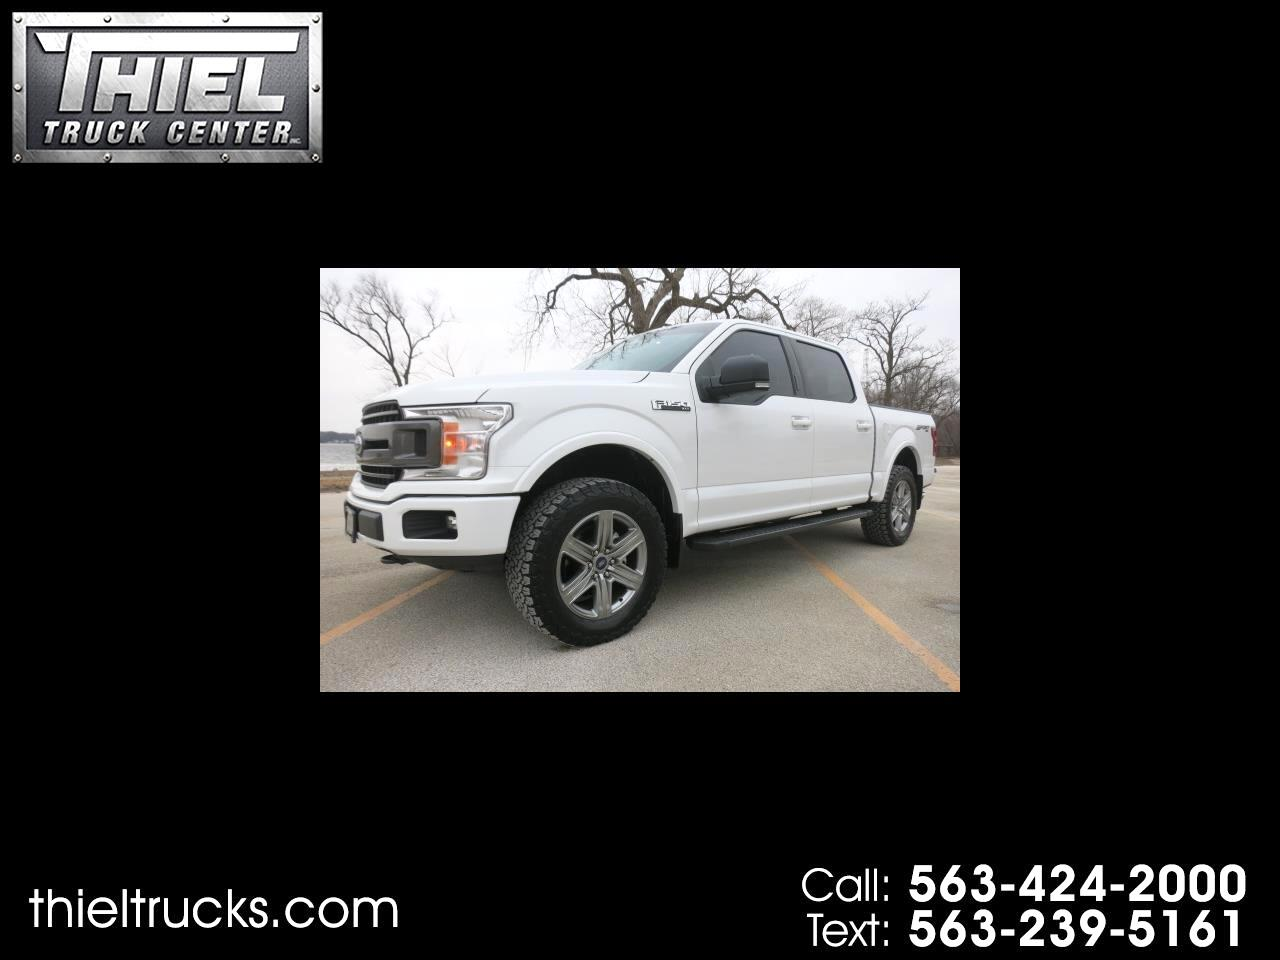 Used Trucks For Sale In Iowa >> Used Cars For Sale Pleasant Valley Ia 52767 Thiel Truck